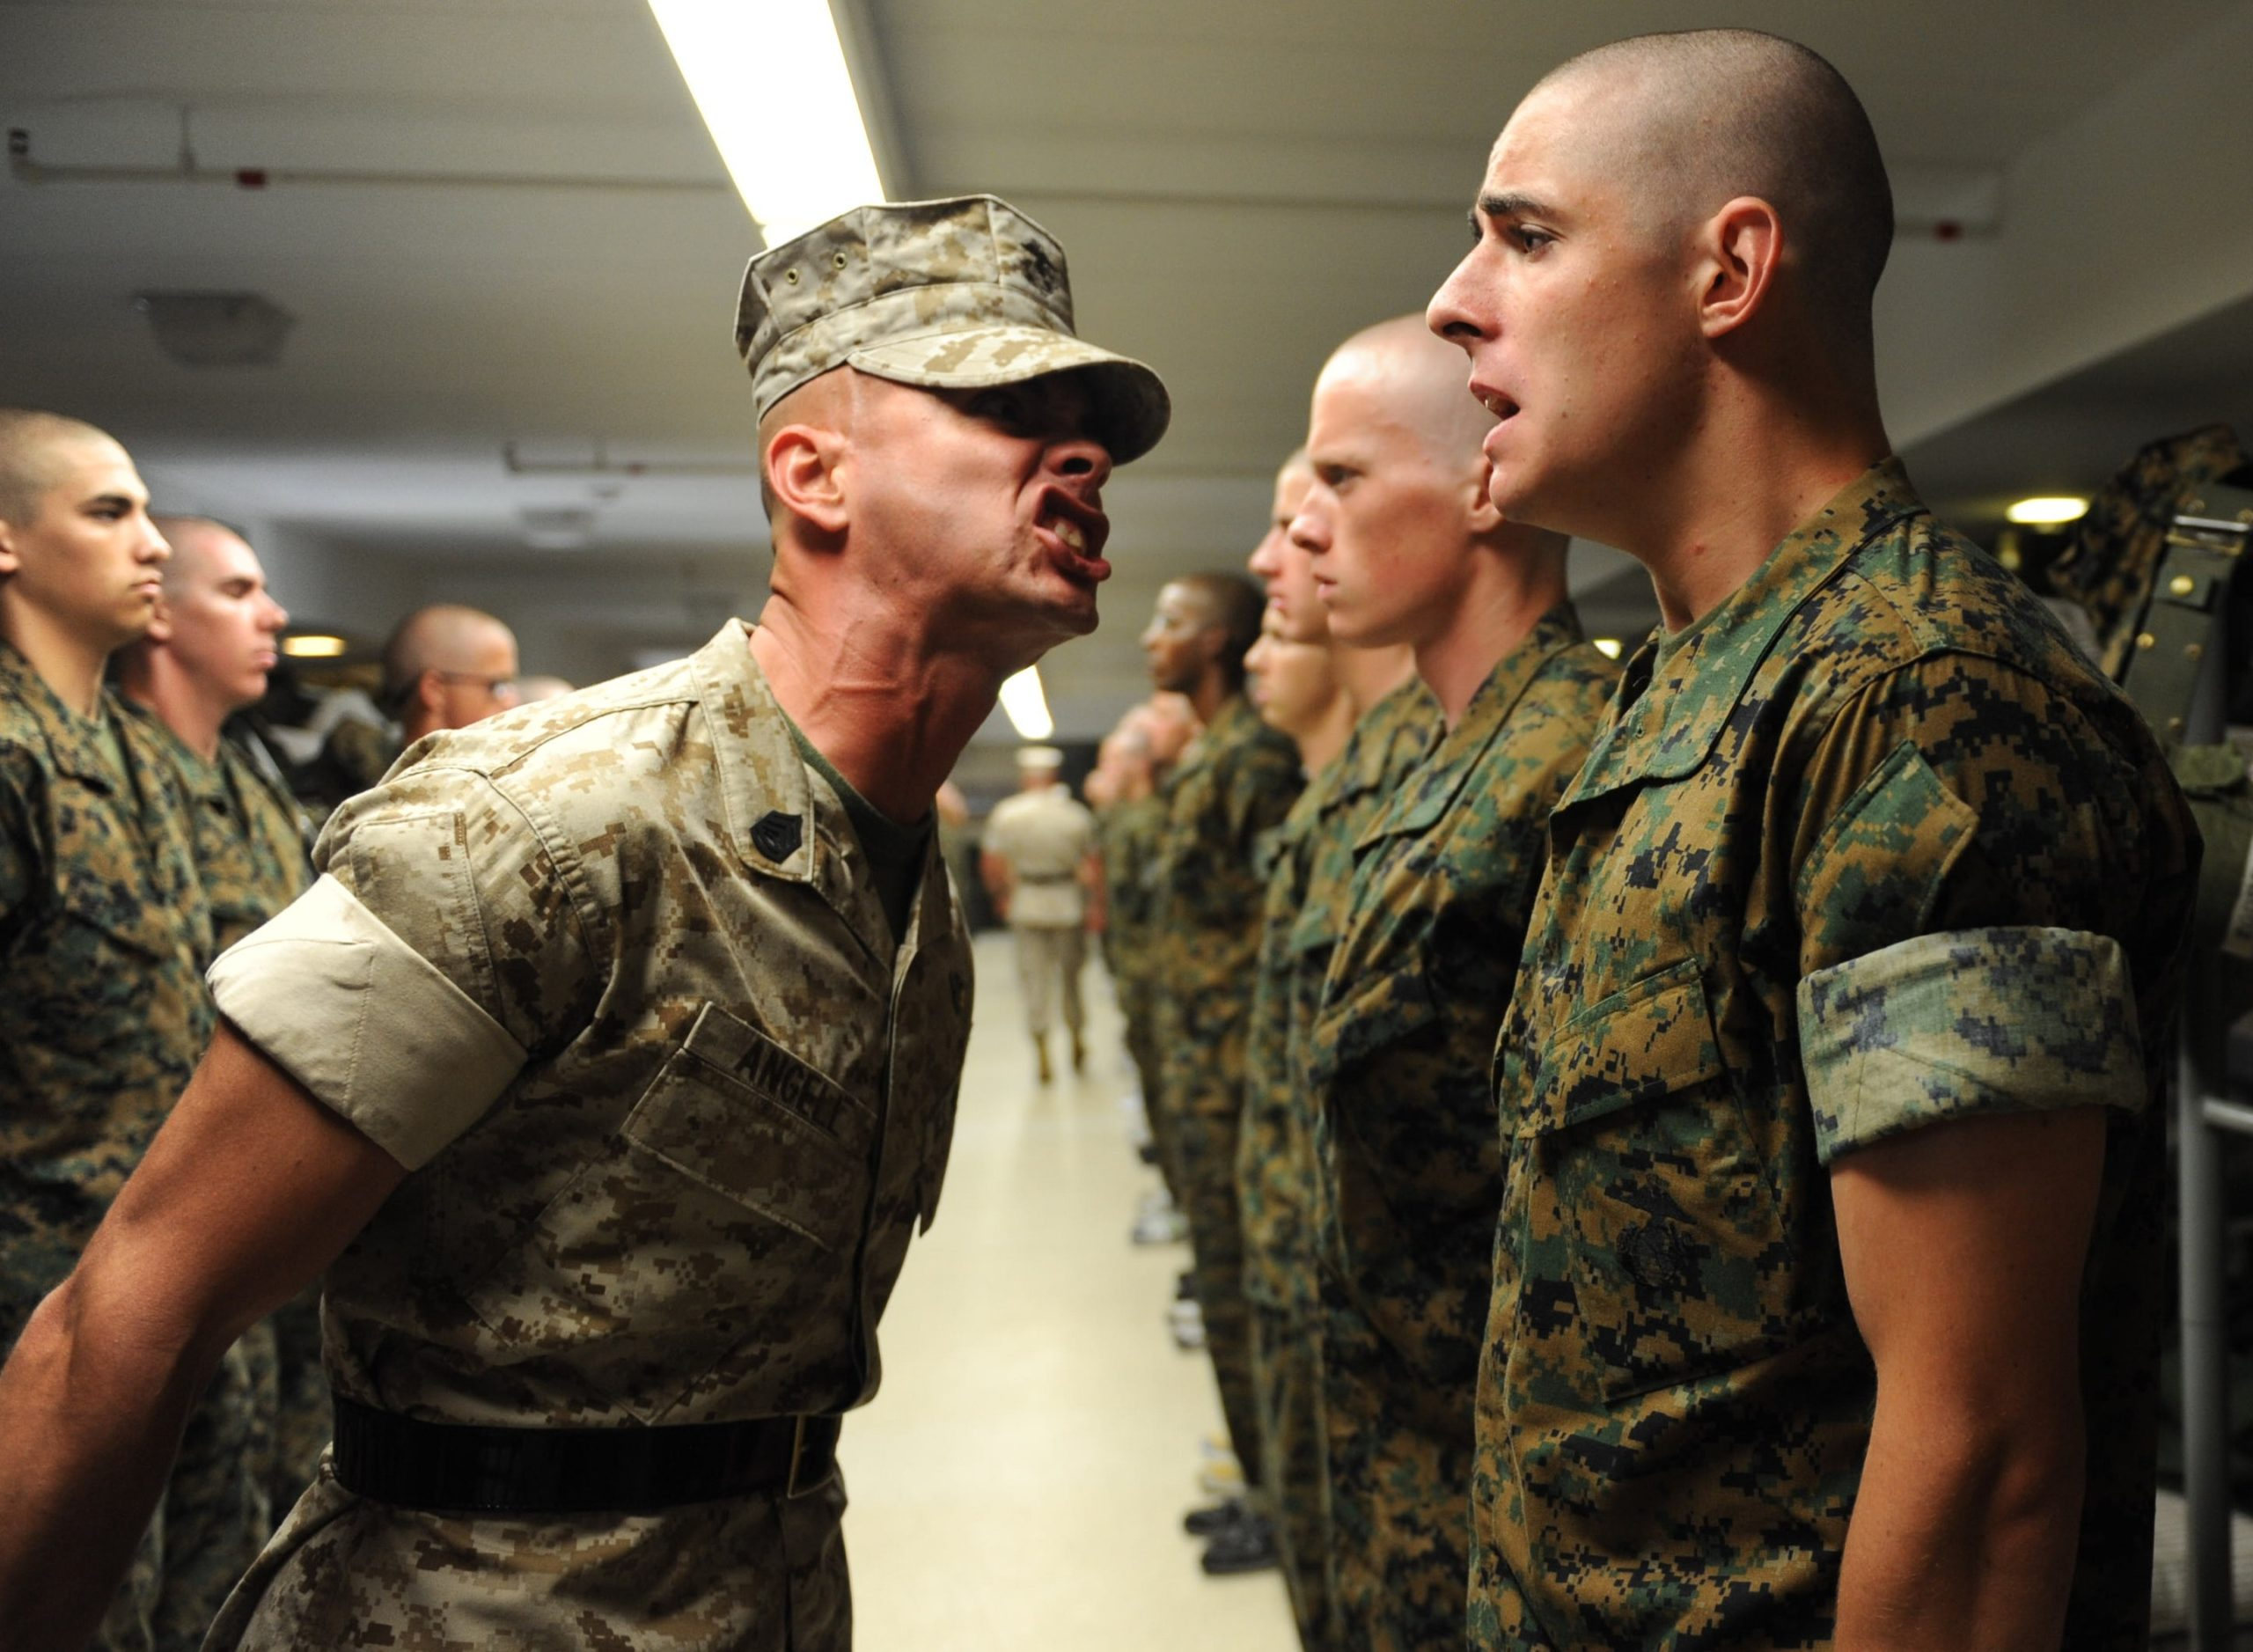 army-authority-drill-instructor-group-280002